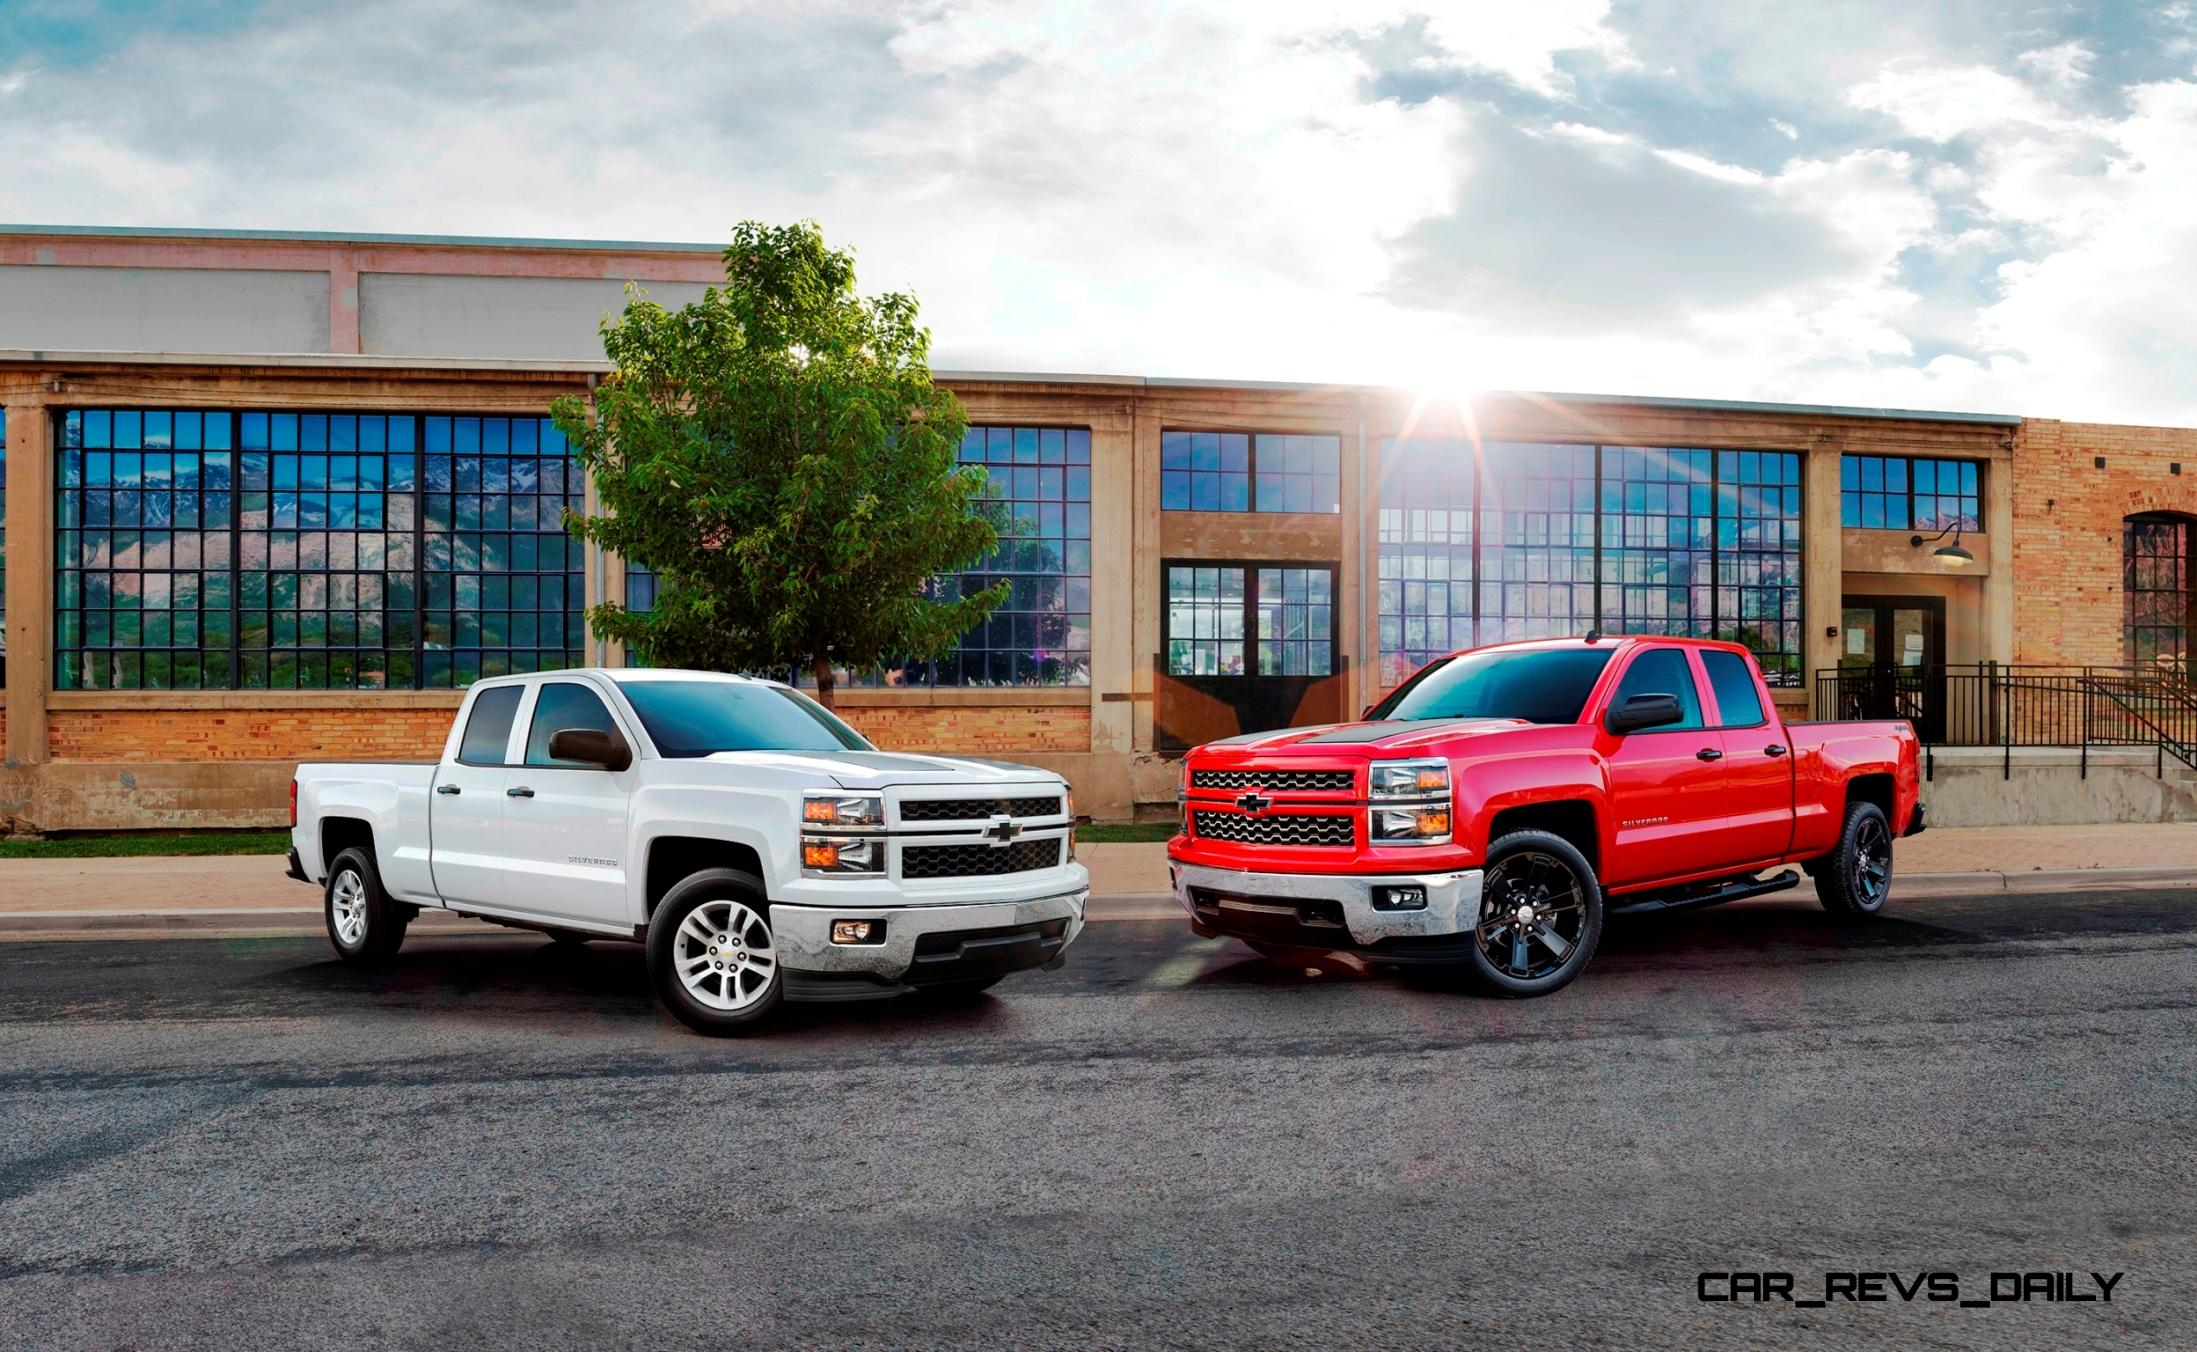 Chevy Silverado Side Steps >> 2015 Chevrolet Silverado 1500 Crew Cab Rally Edition Adds ...